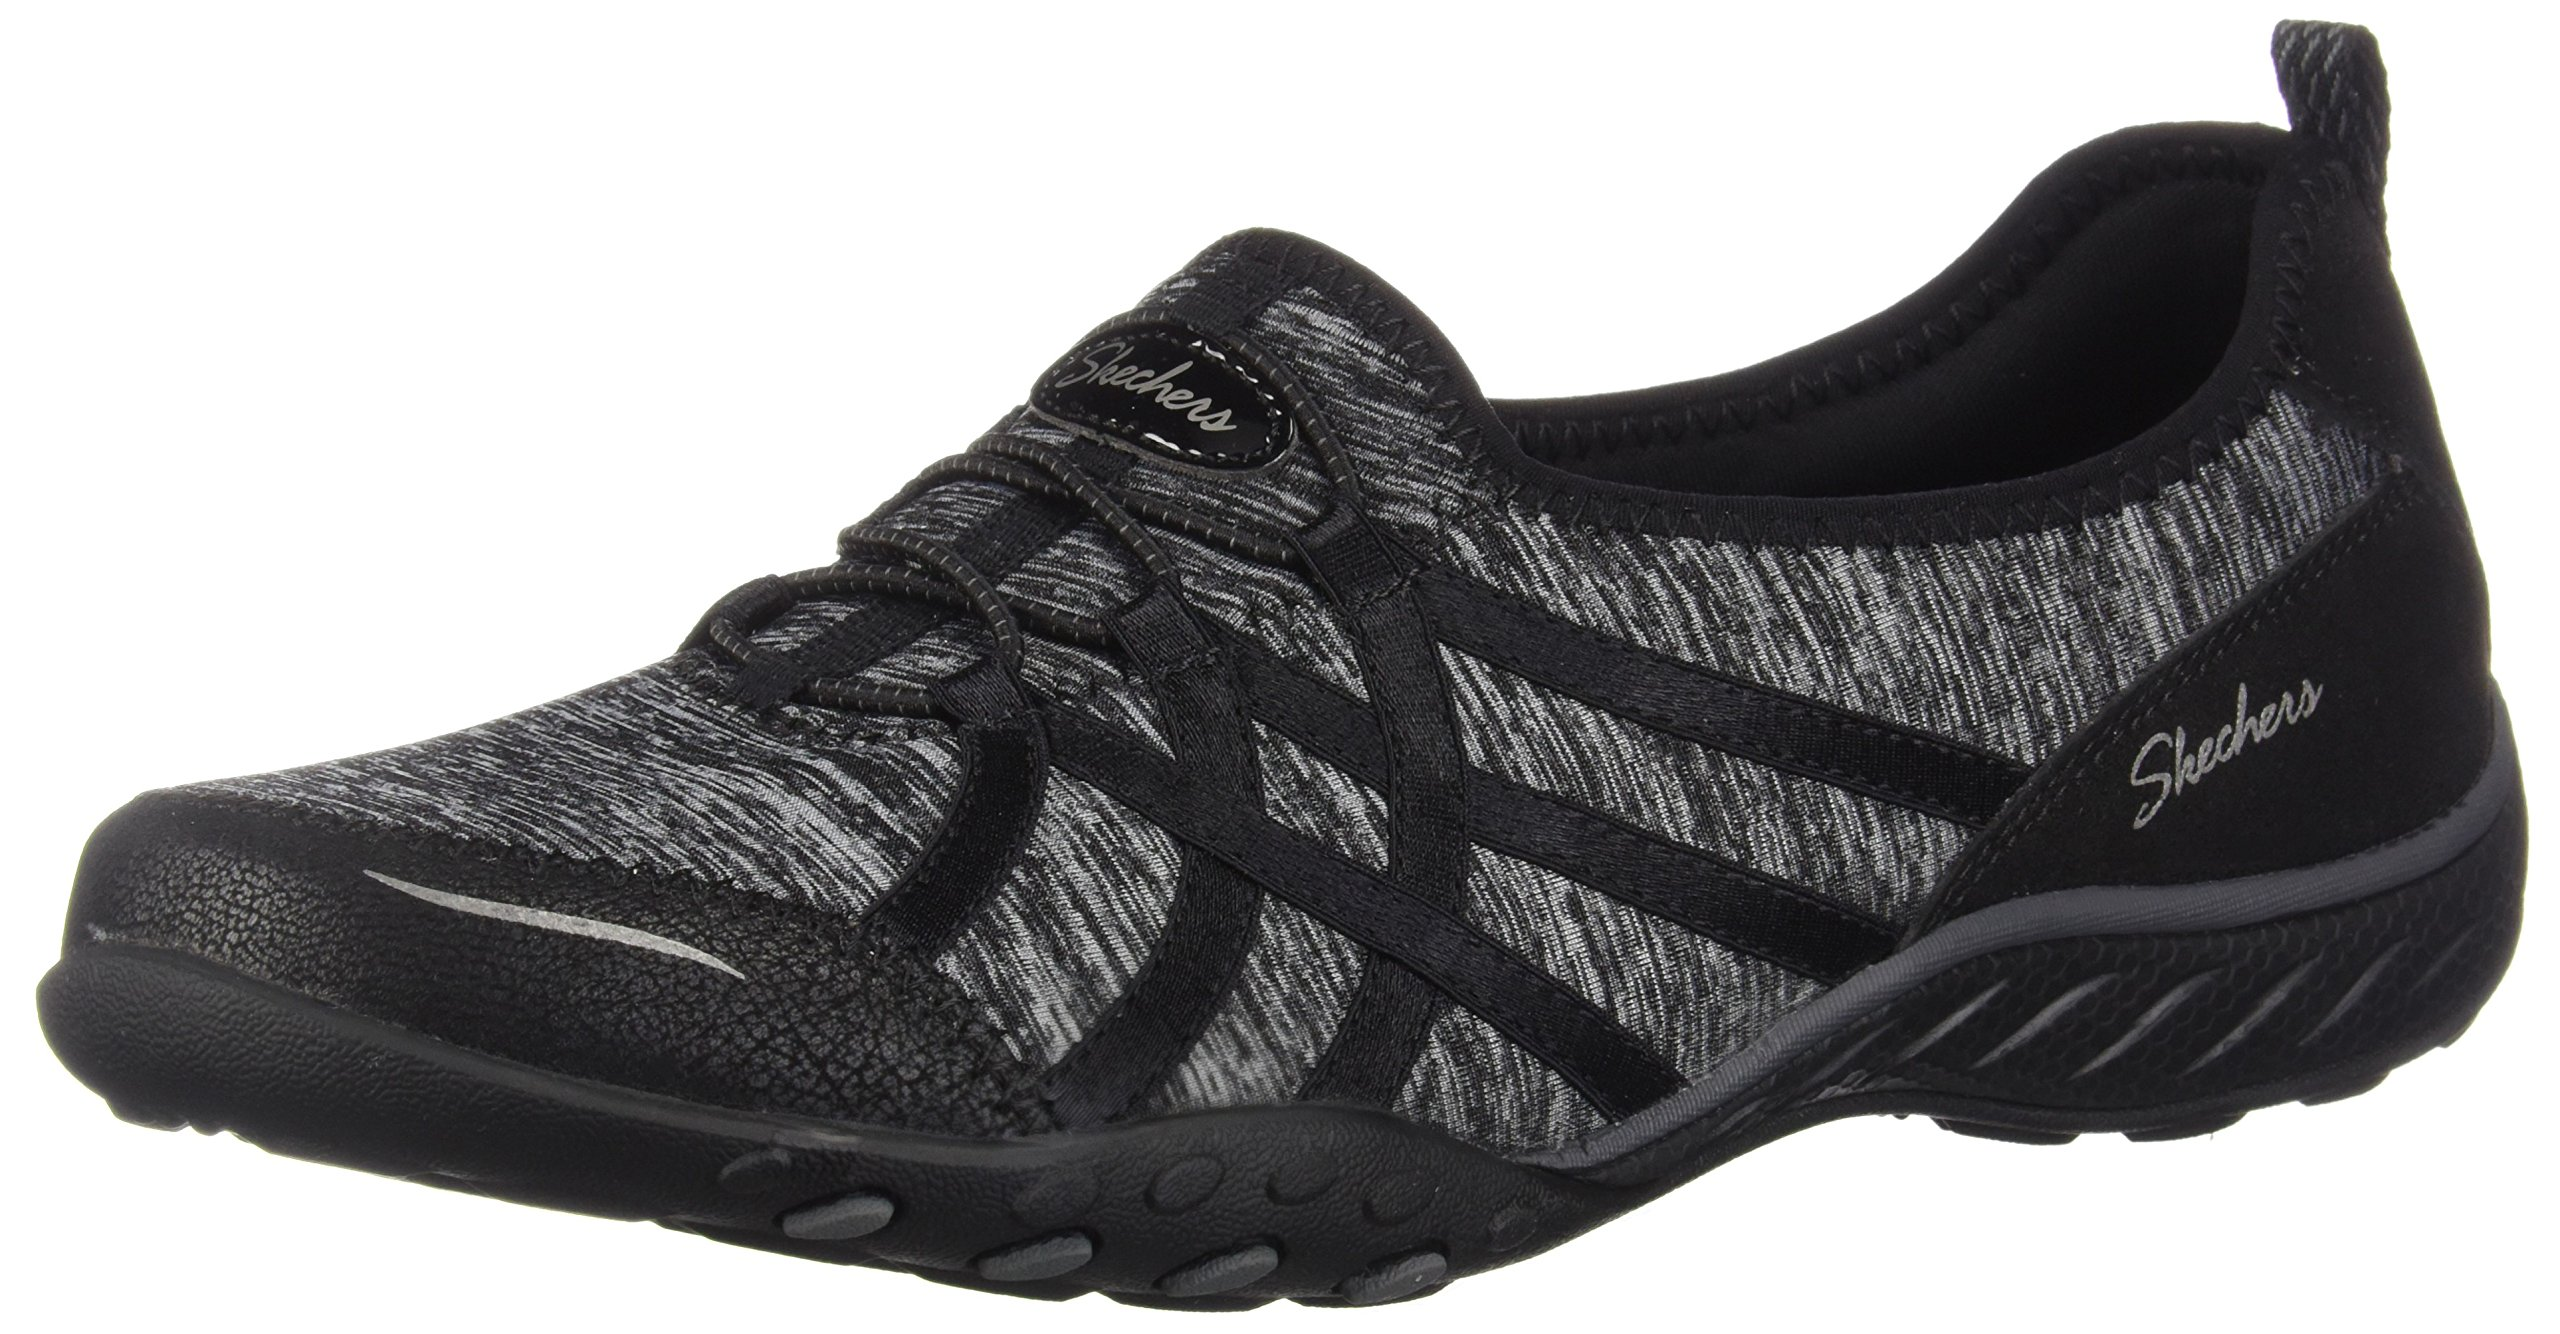 Skechers Relaxed Fit Breathe Easy Untroubled Womens Slip On Sneakers Black 9